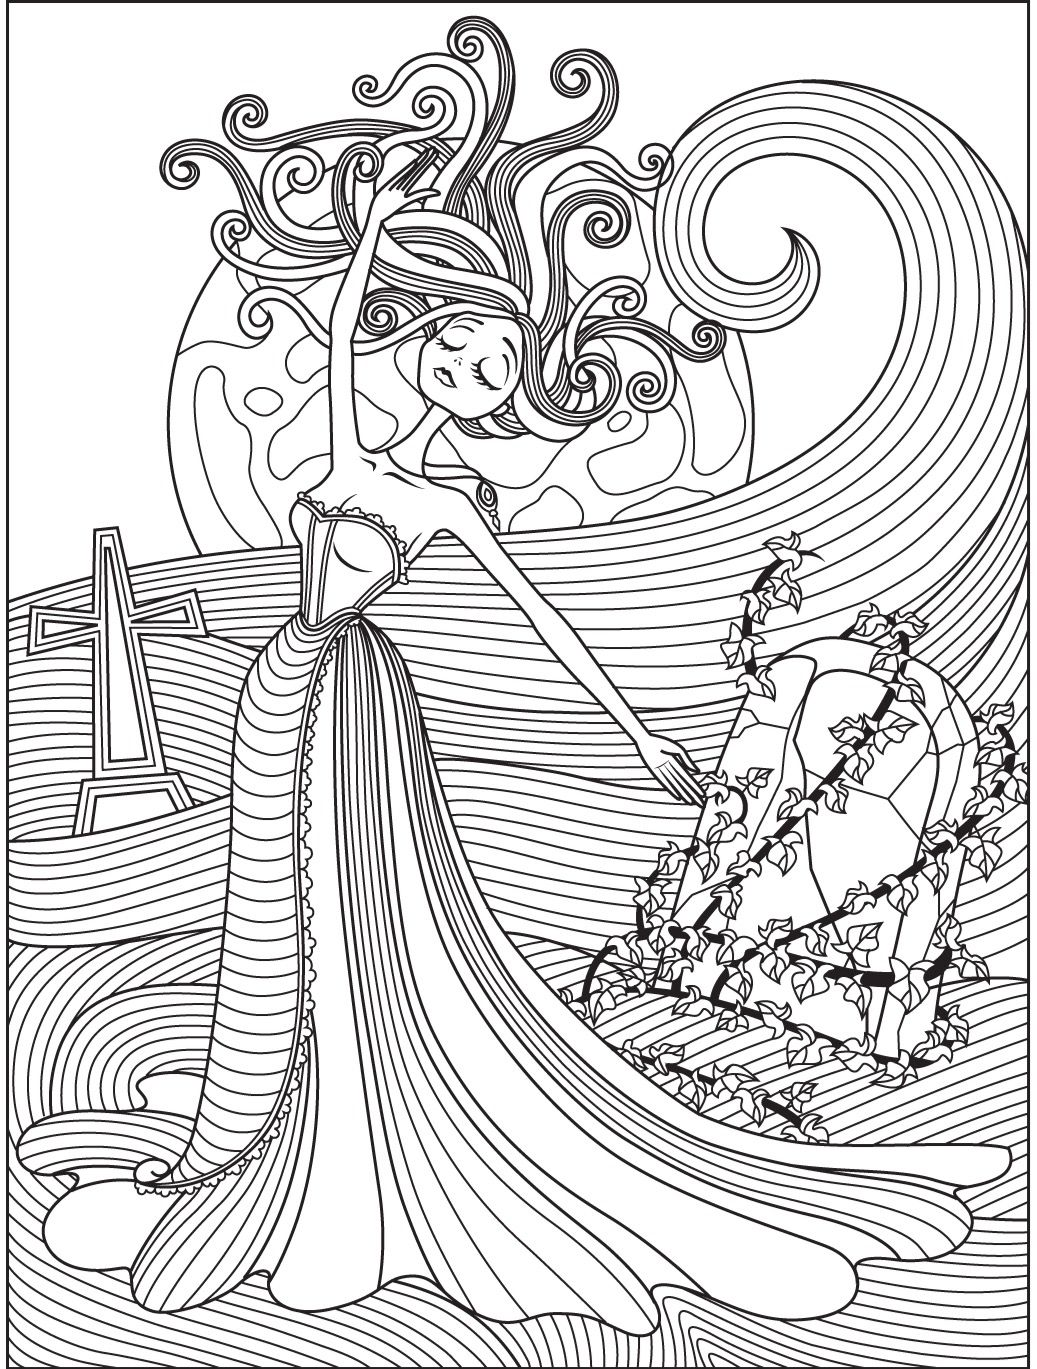 Halloween Coloring Page Colorish Free Coloring App For Adults By Goodsofttech Halloween Coloring Pages Cool Coloring Pages Pumpkin Coloring Pages